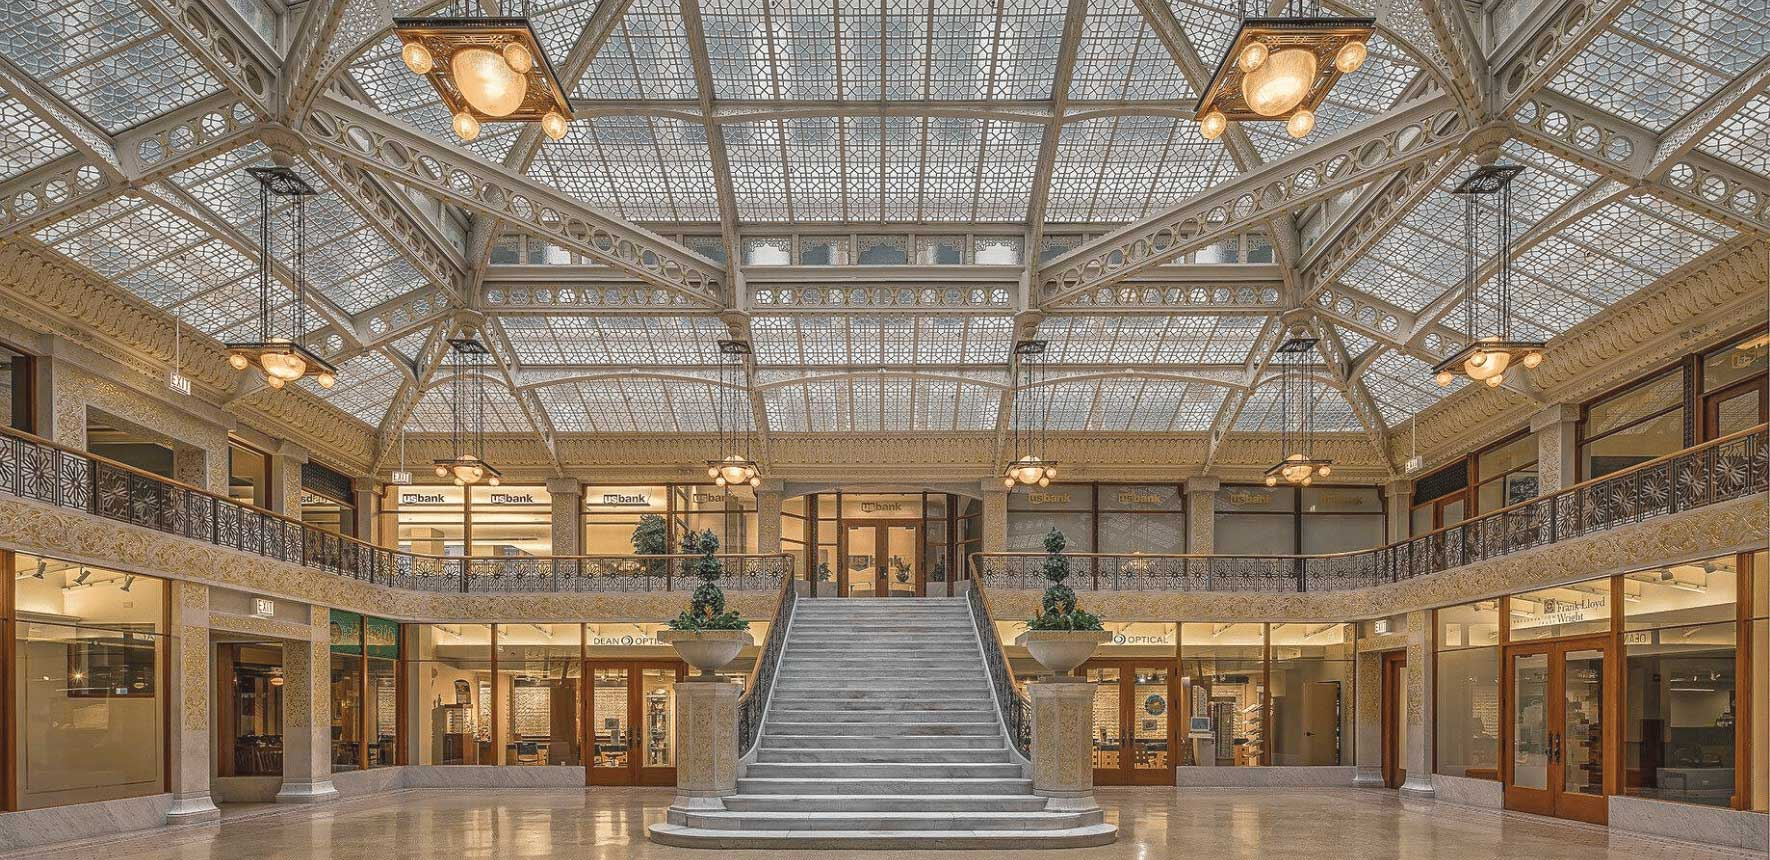 The Rookery Light Court